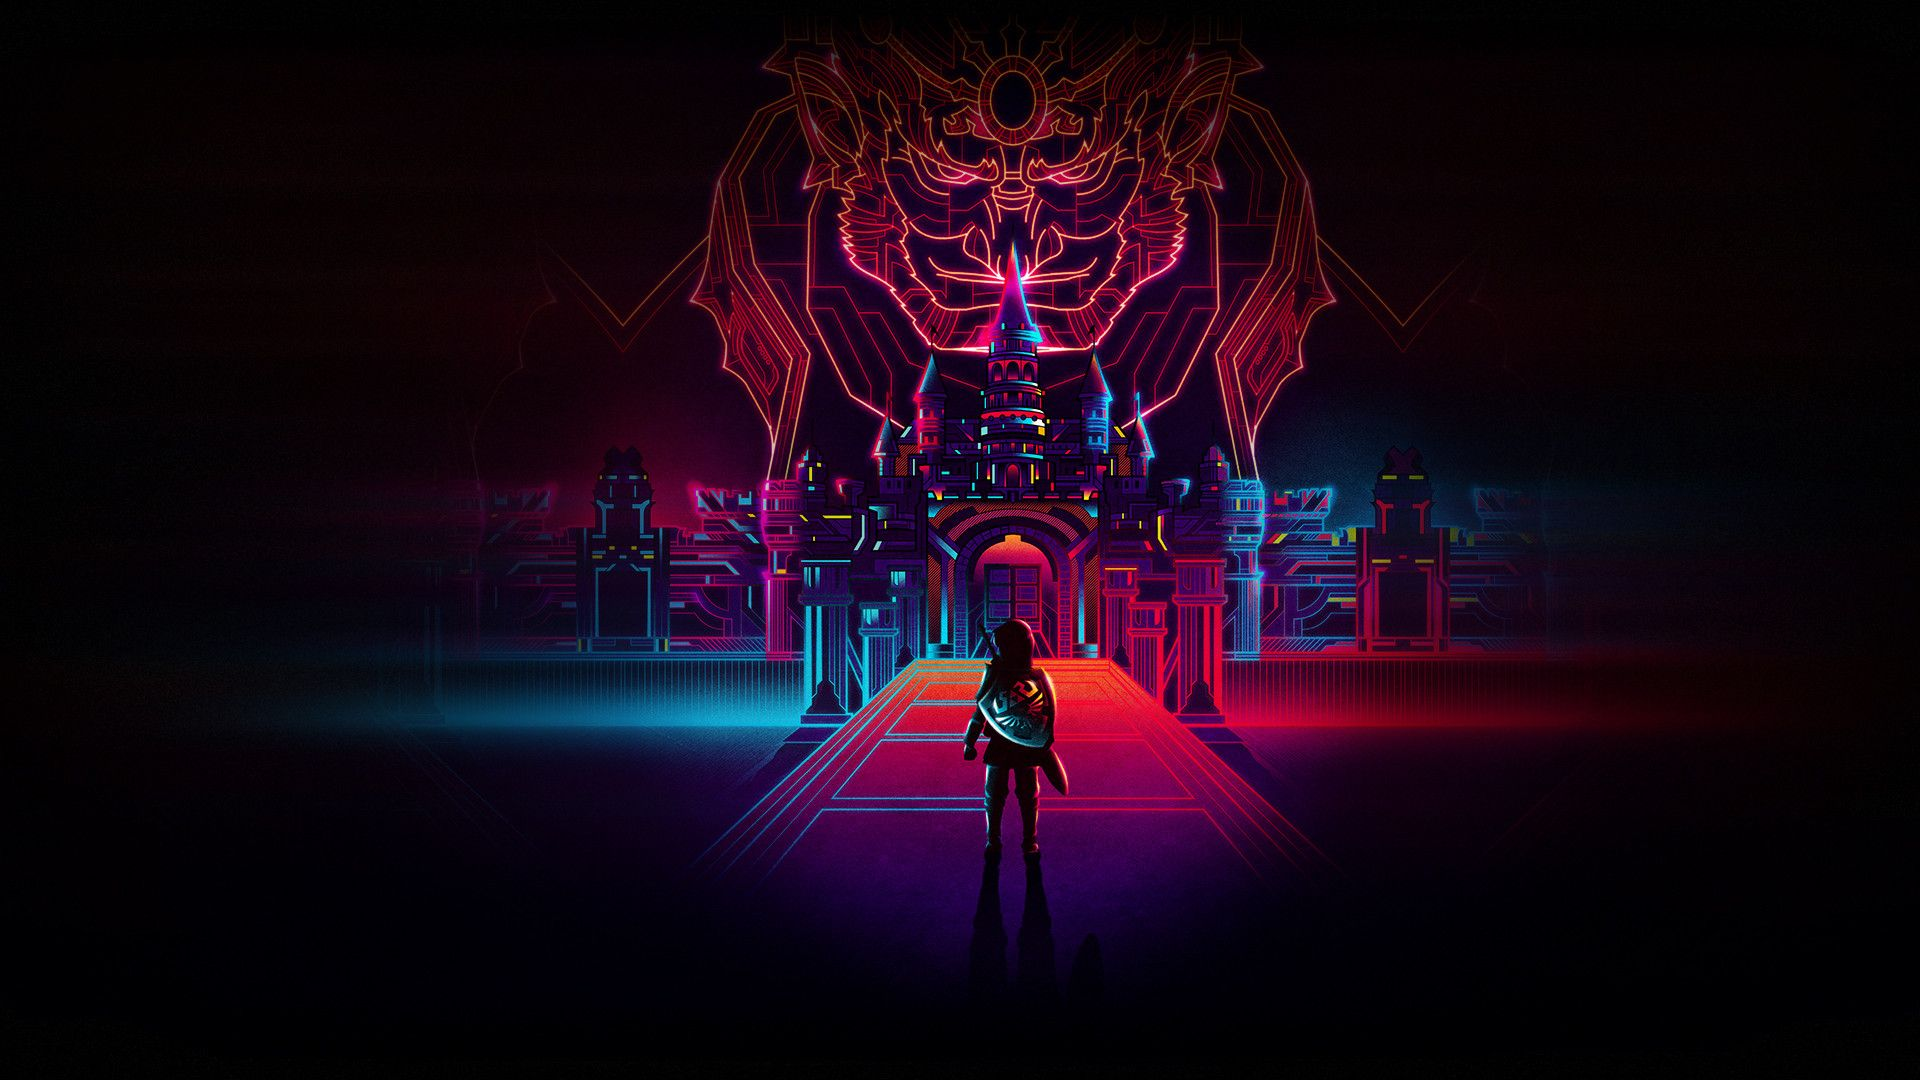 Zelda 1920x1080 Neon Wallpaper Neon Backgrounds New Wallpaper Hd